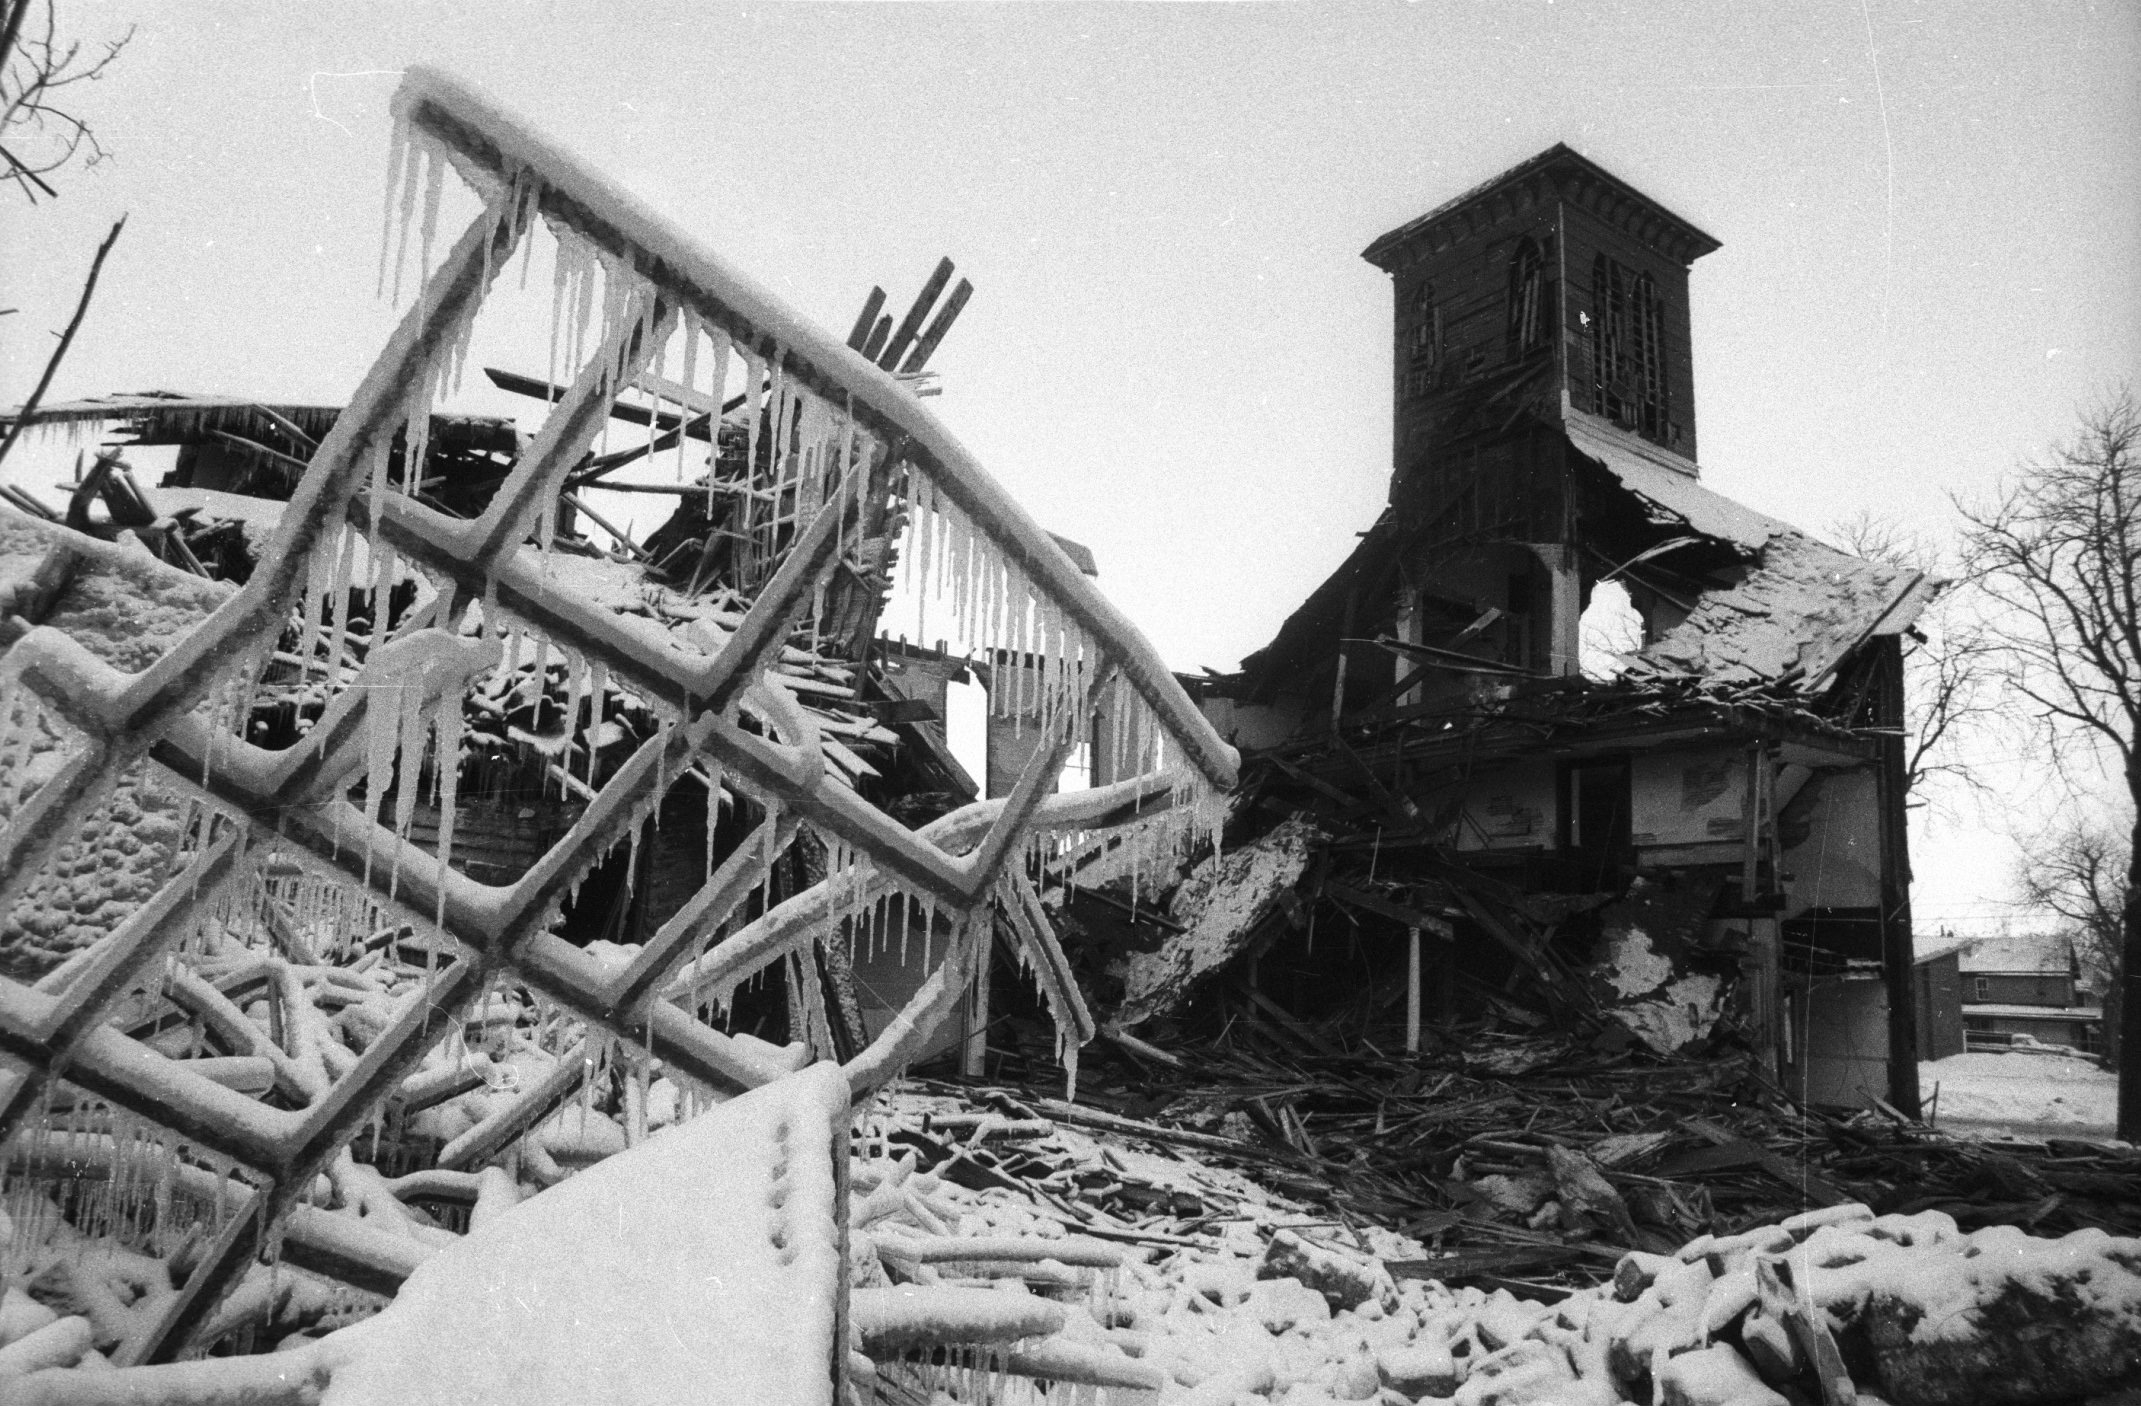 Little was left standing after the Dec. 27, 1983, explosion at a warehouse on North Division Street.